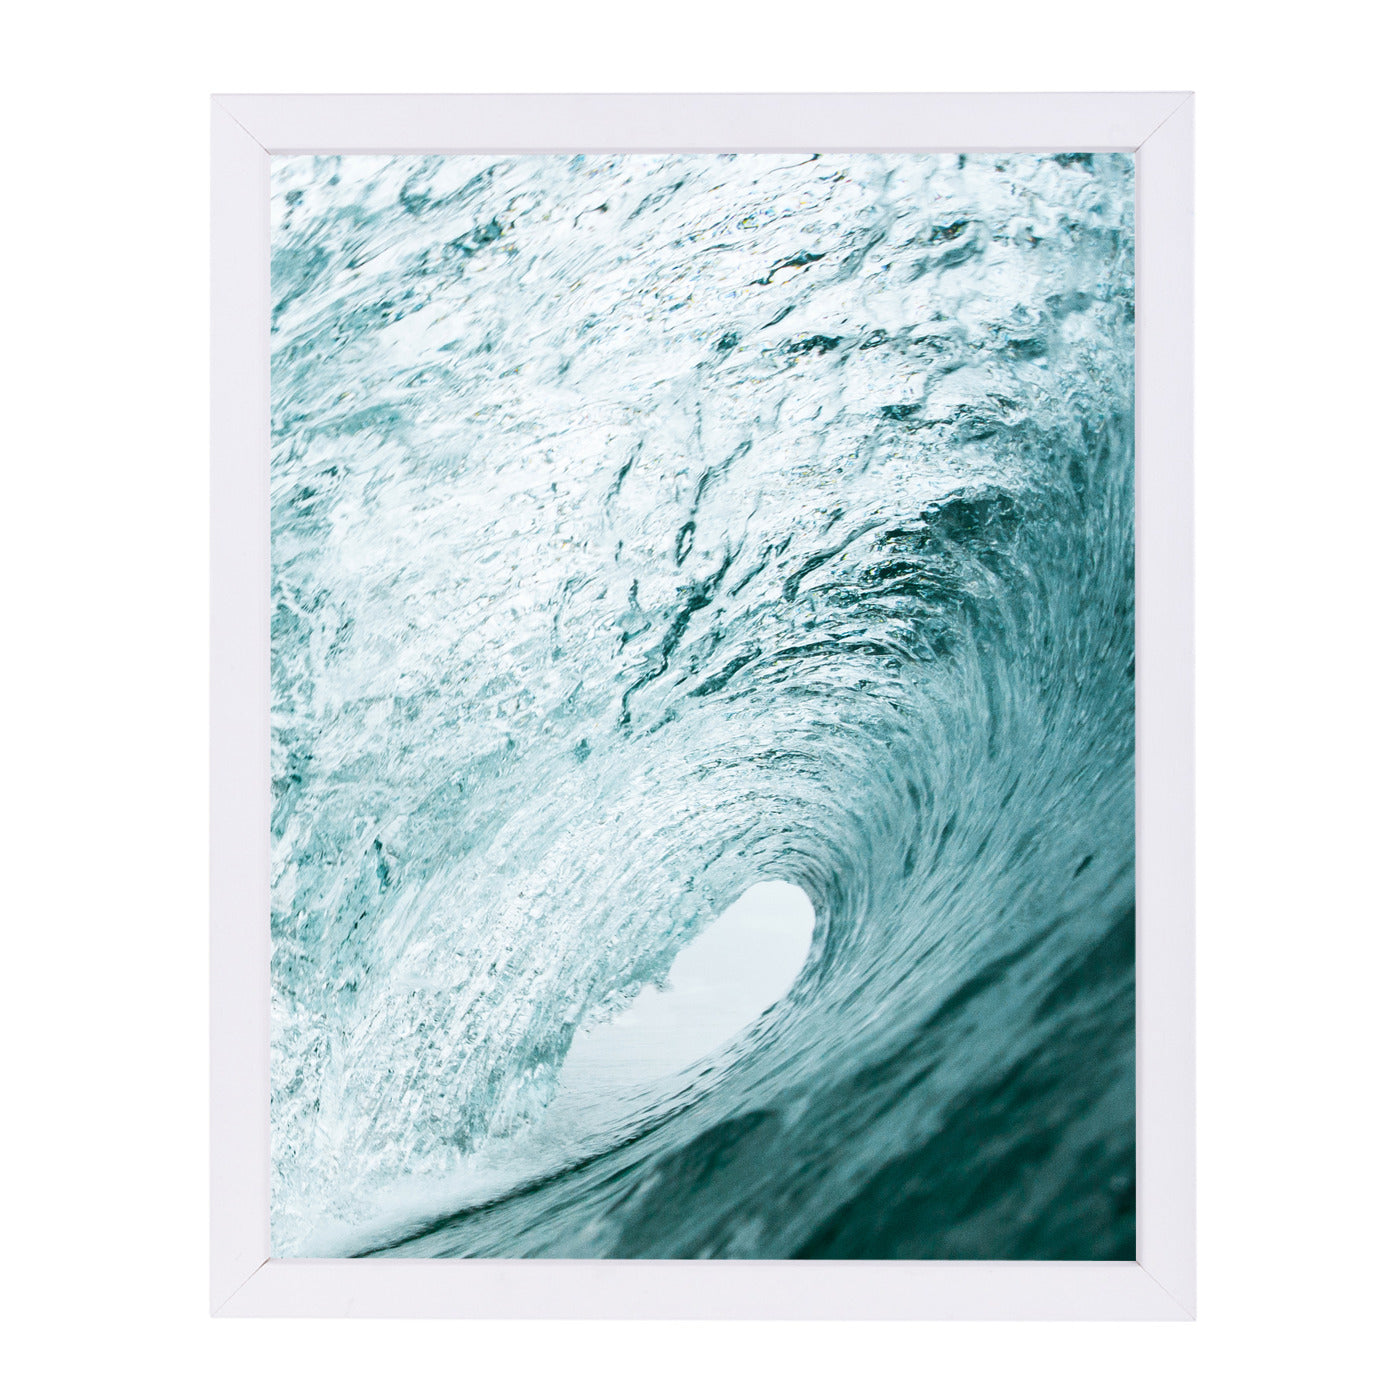 "Wave By Sisi And Seb - White Framed Print, Wall Art, Sisi and Seb, 8"" x 10"""